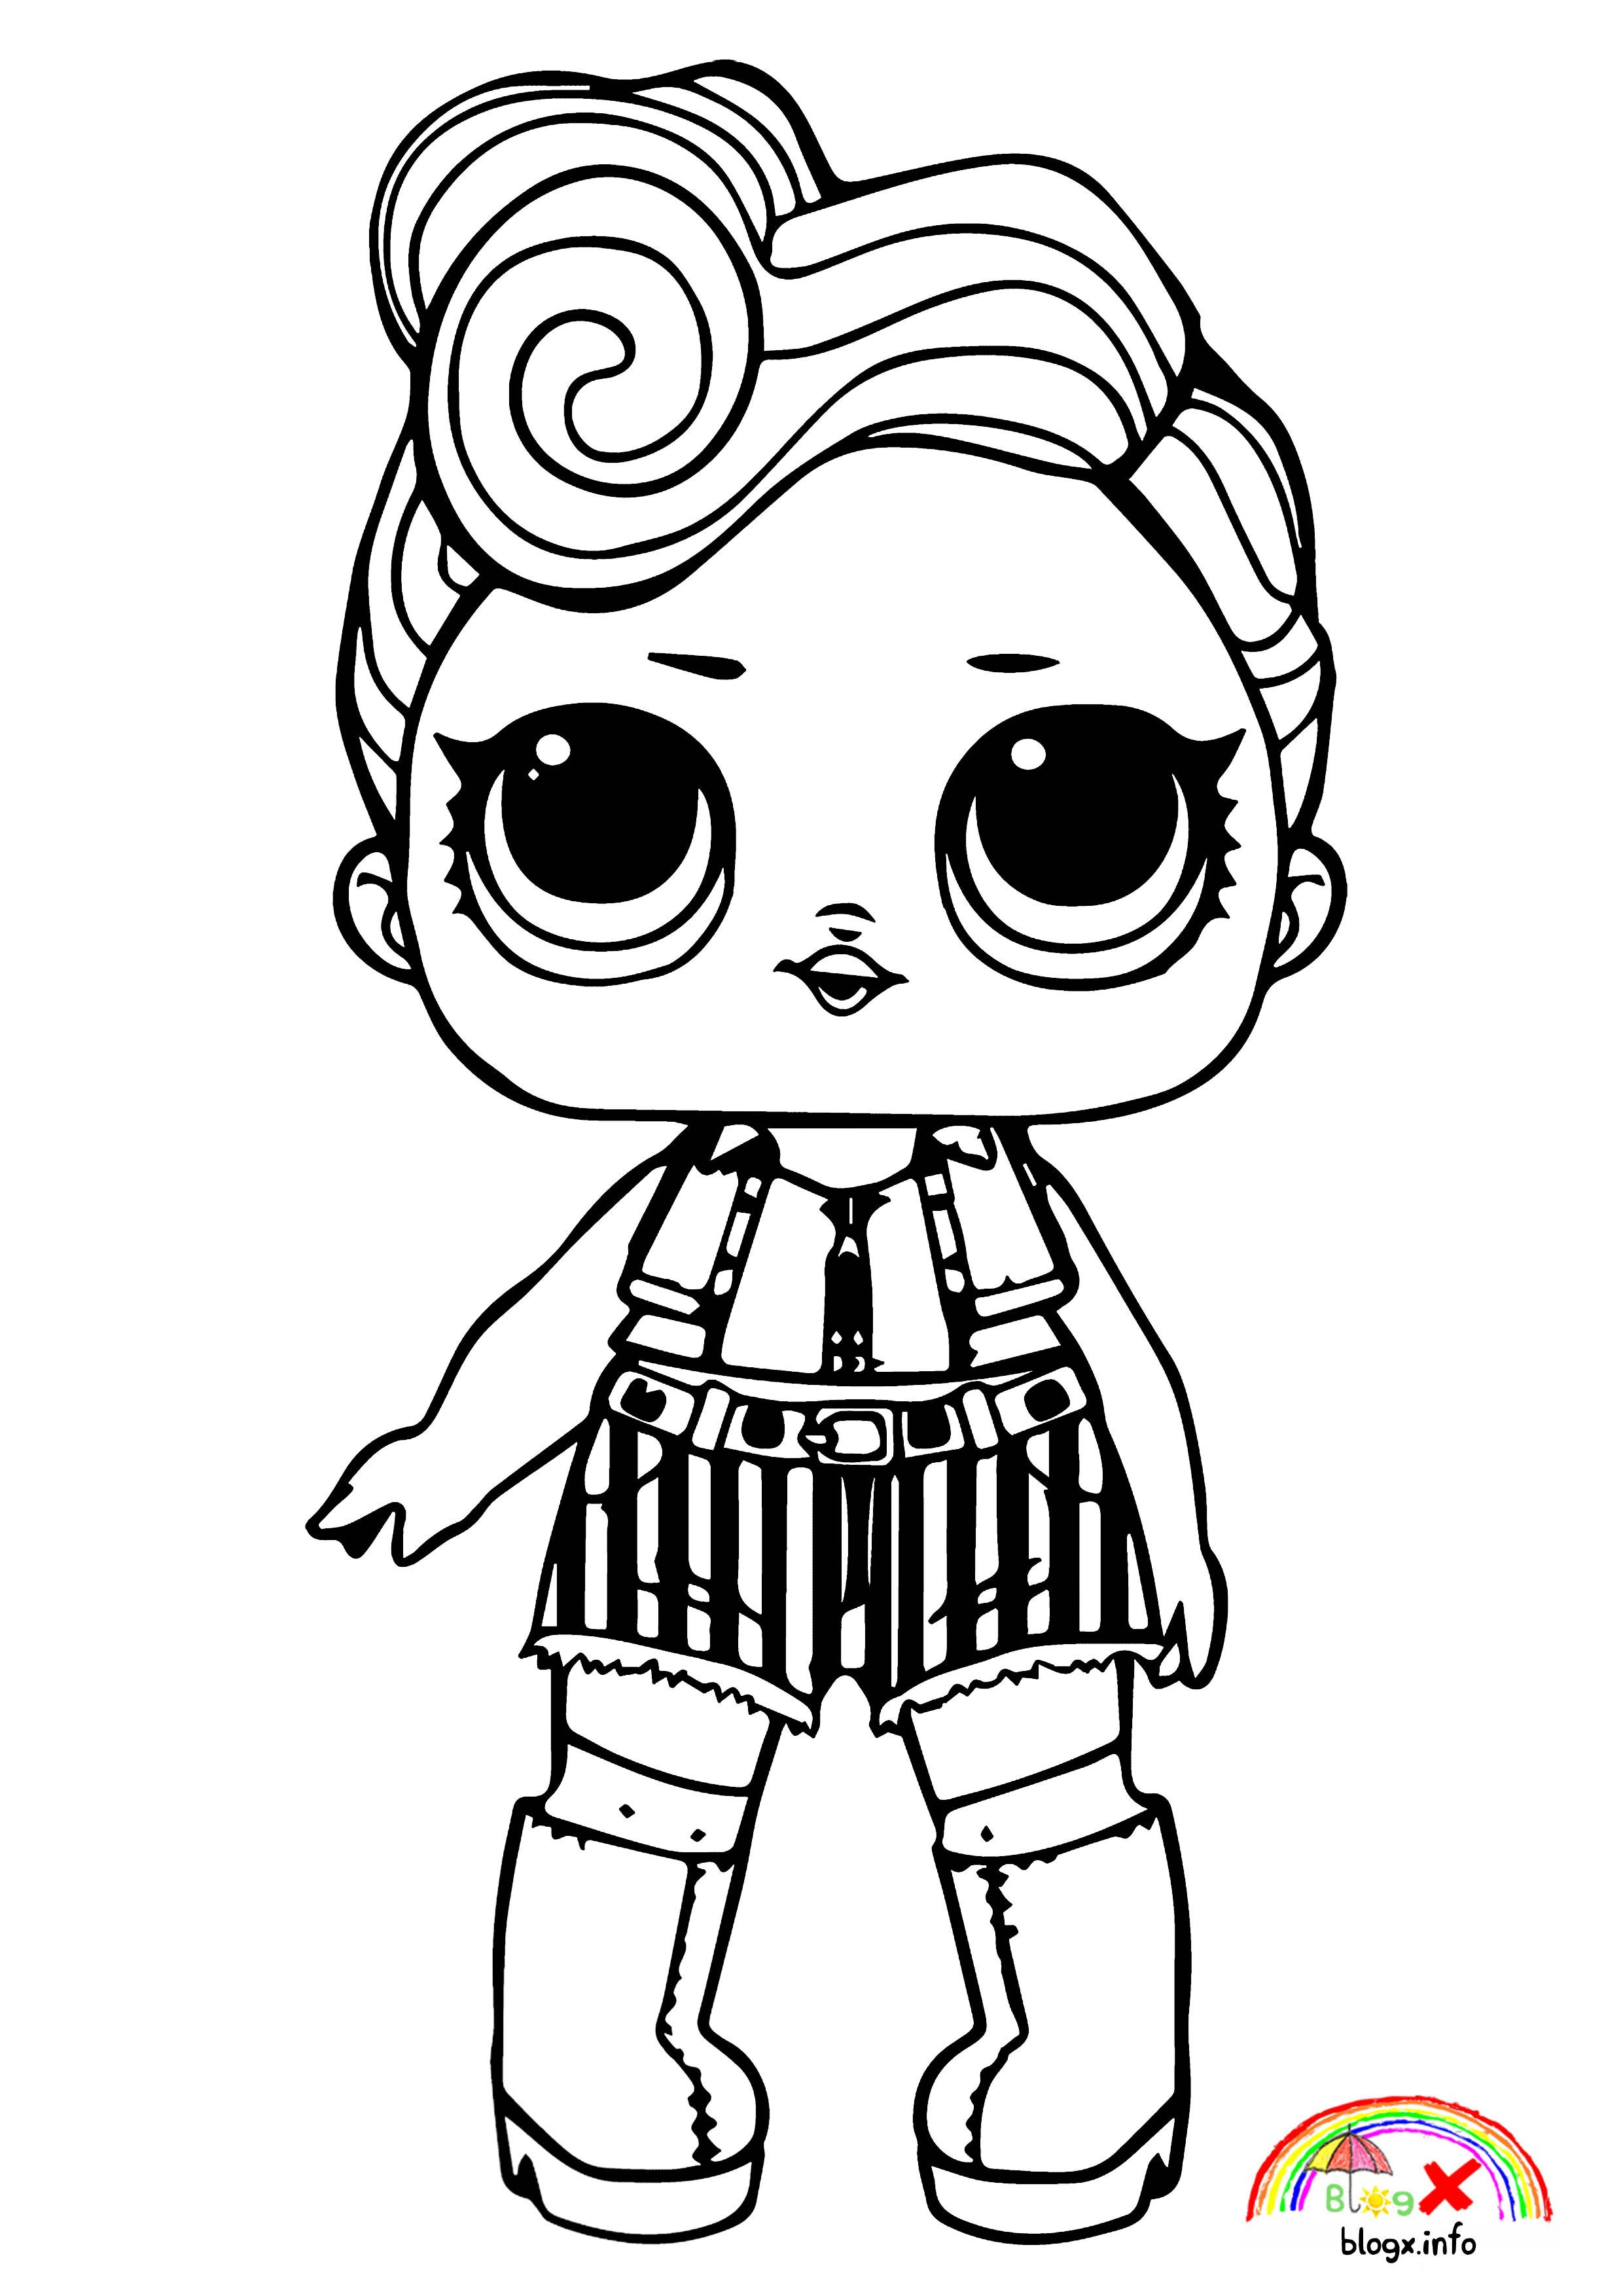 Simple Lol Costume Dolls Coloring Page Coloring Books Baby Coloring Pages Cartoon Coloring Pages